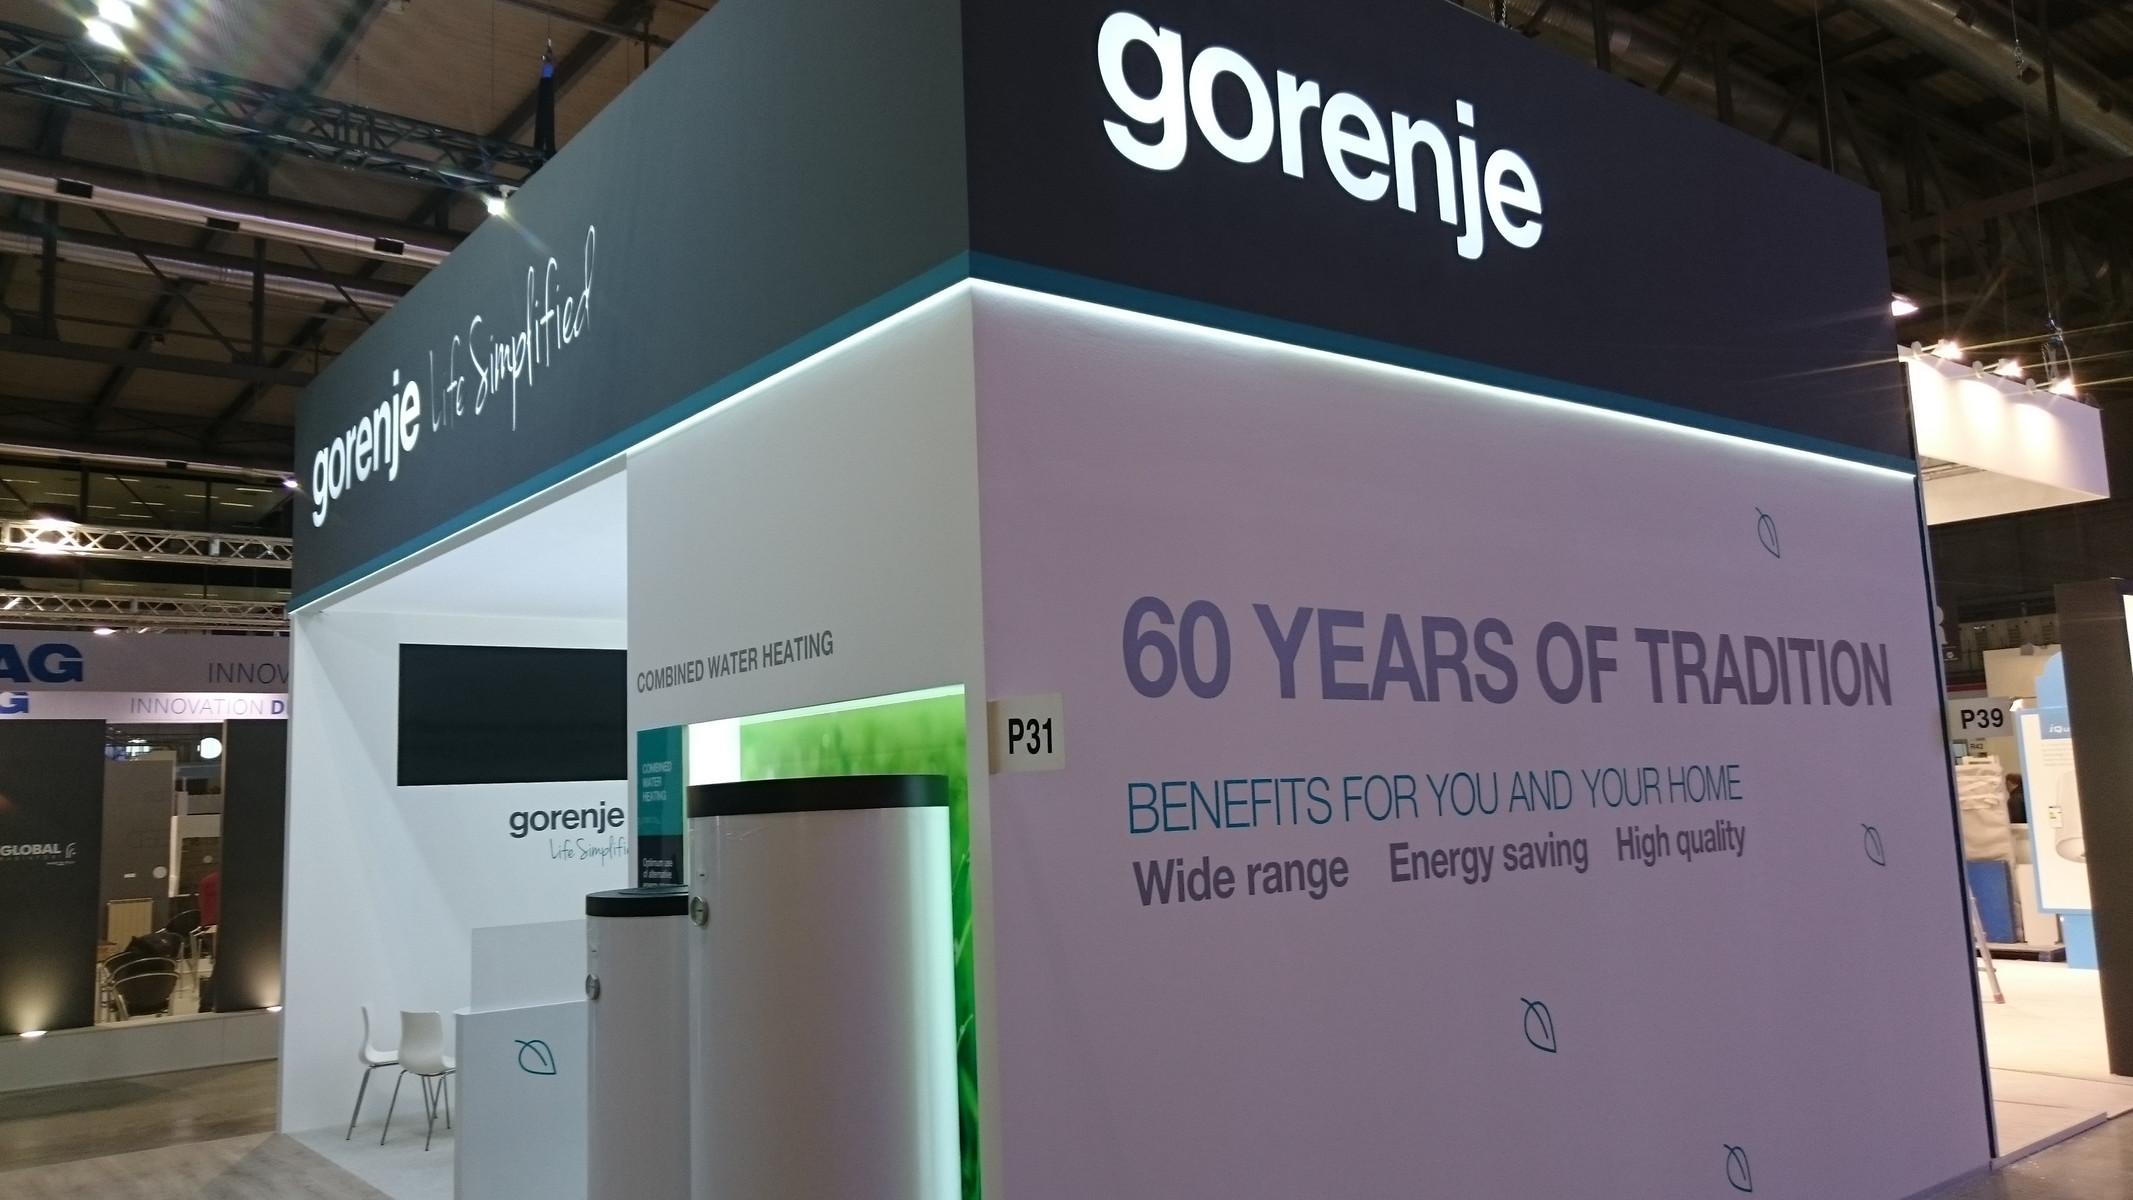 Exhibition Stand Design Guidelines : Exhibition signage custom theme